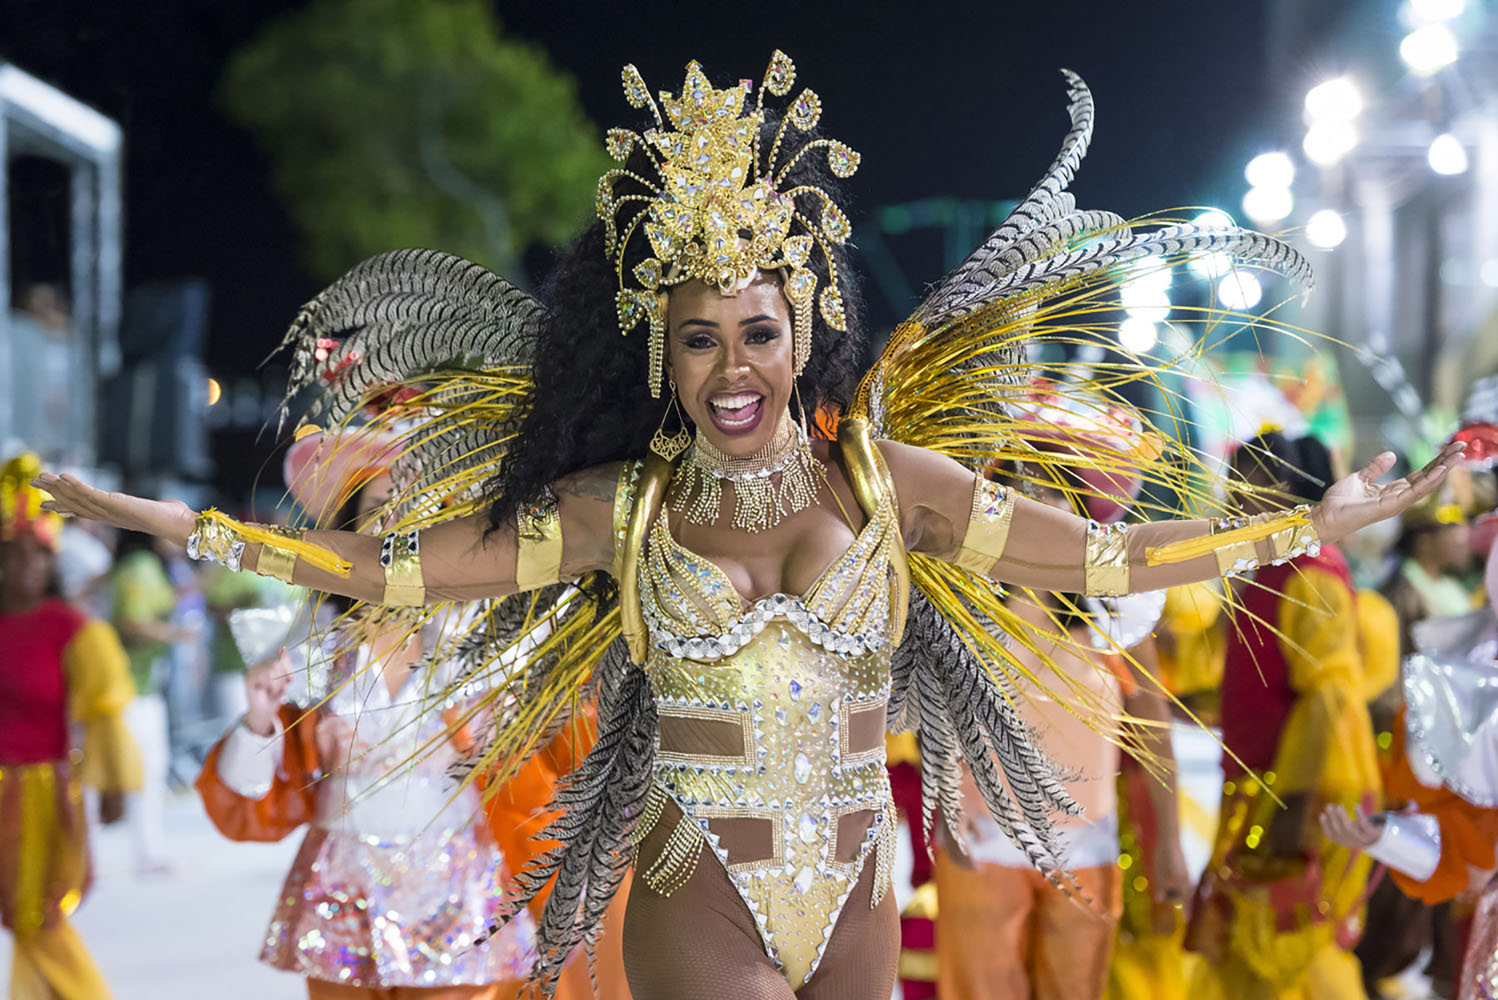 A woman dances in costume at Carnaval in Rio